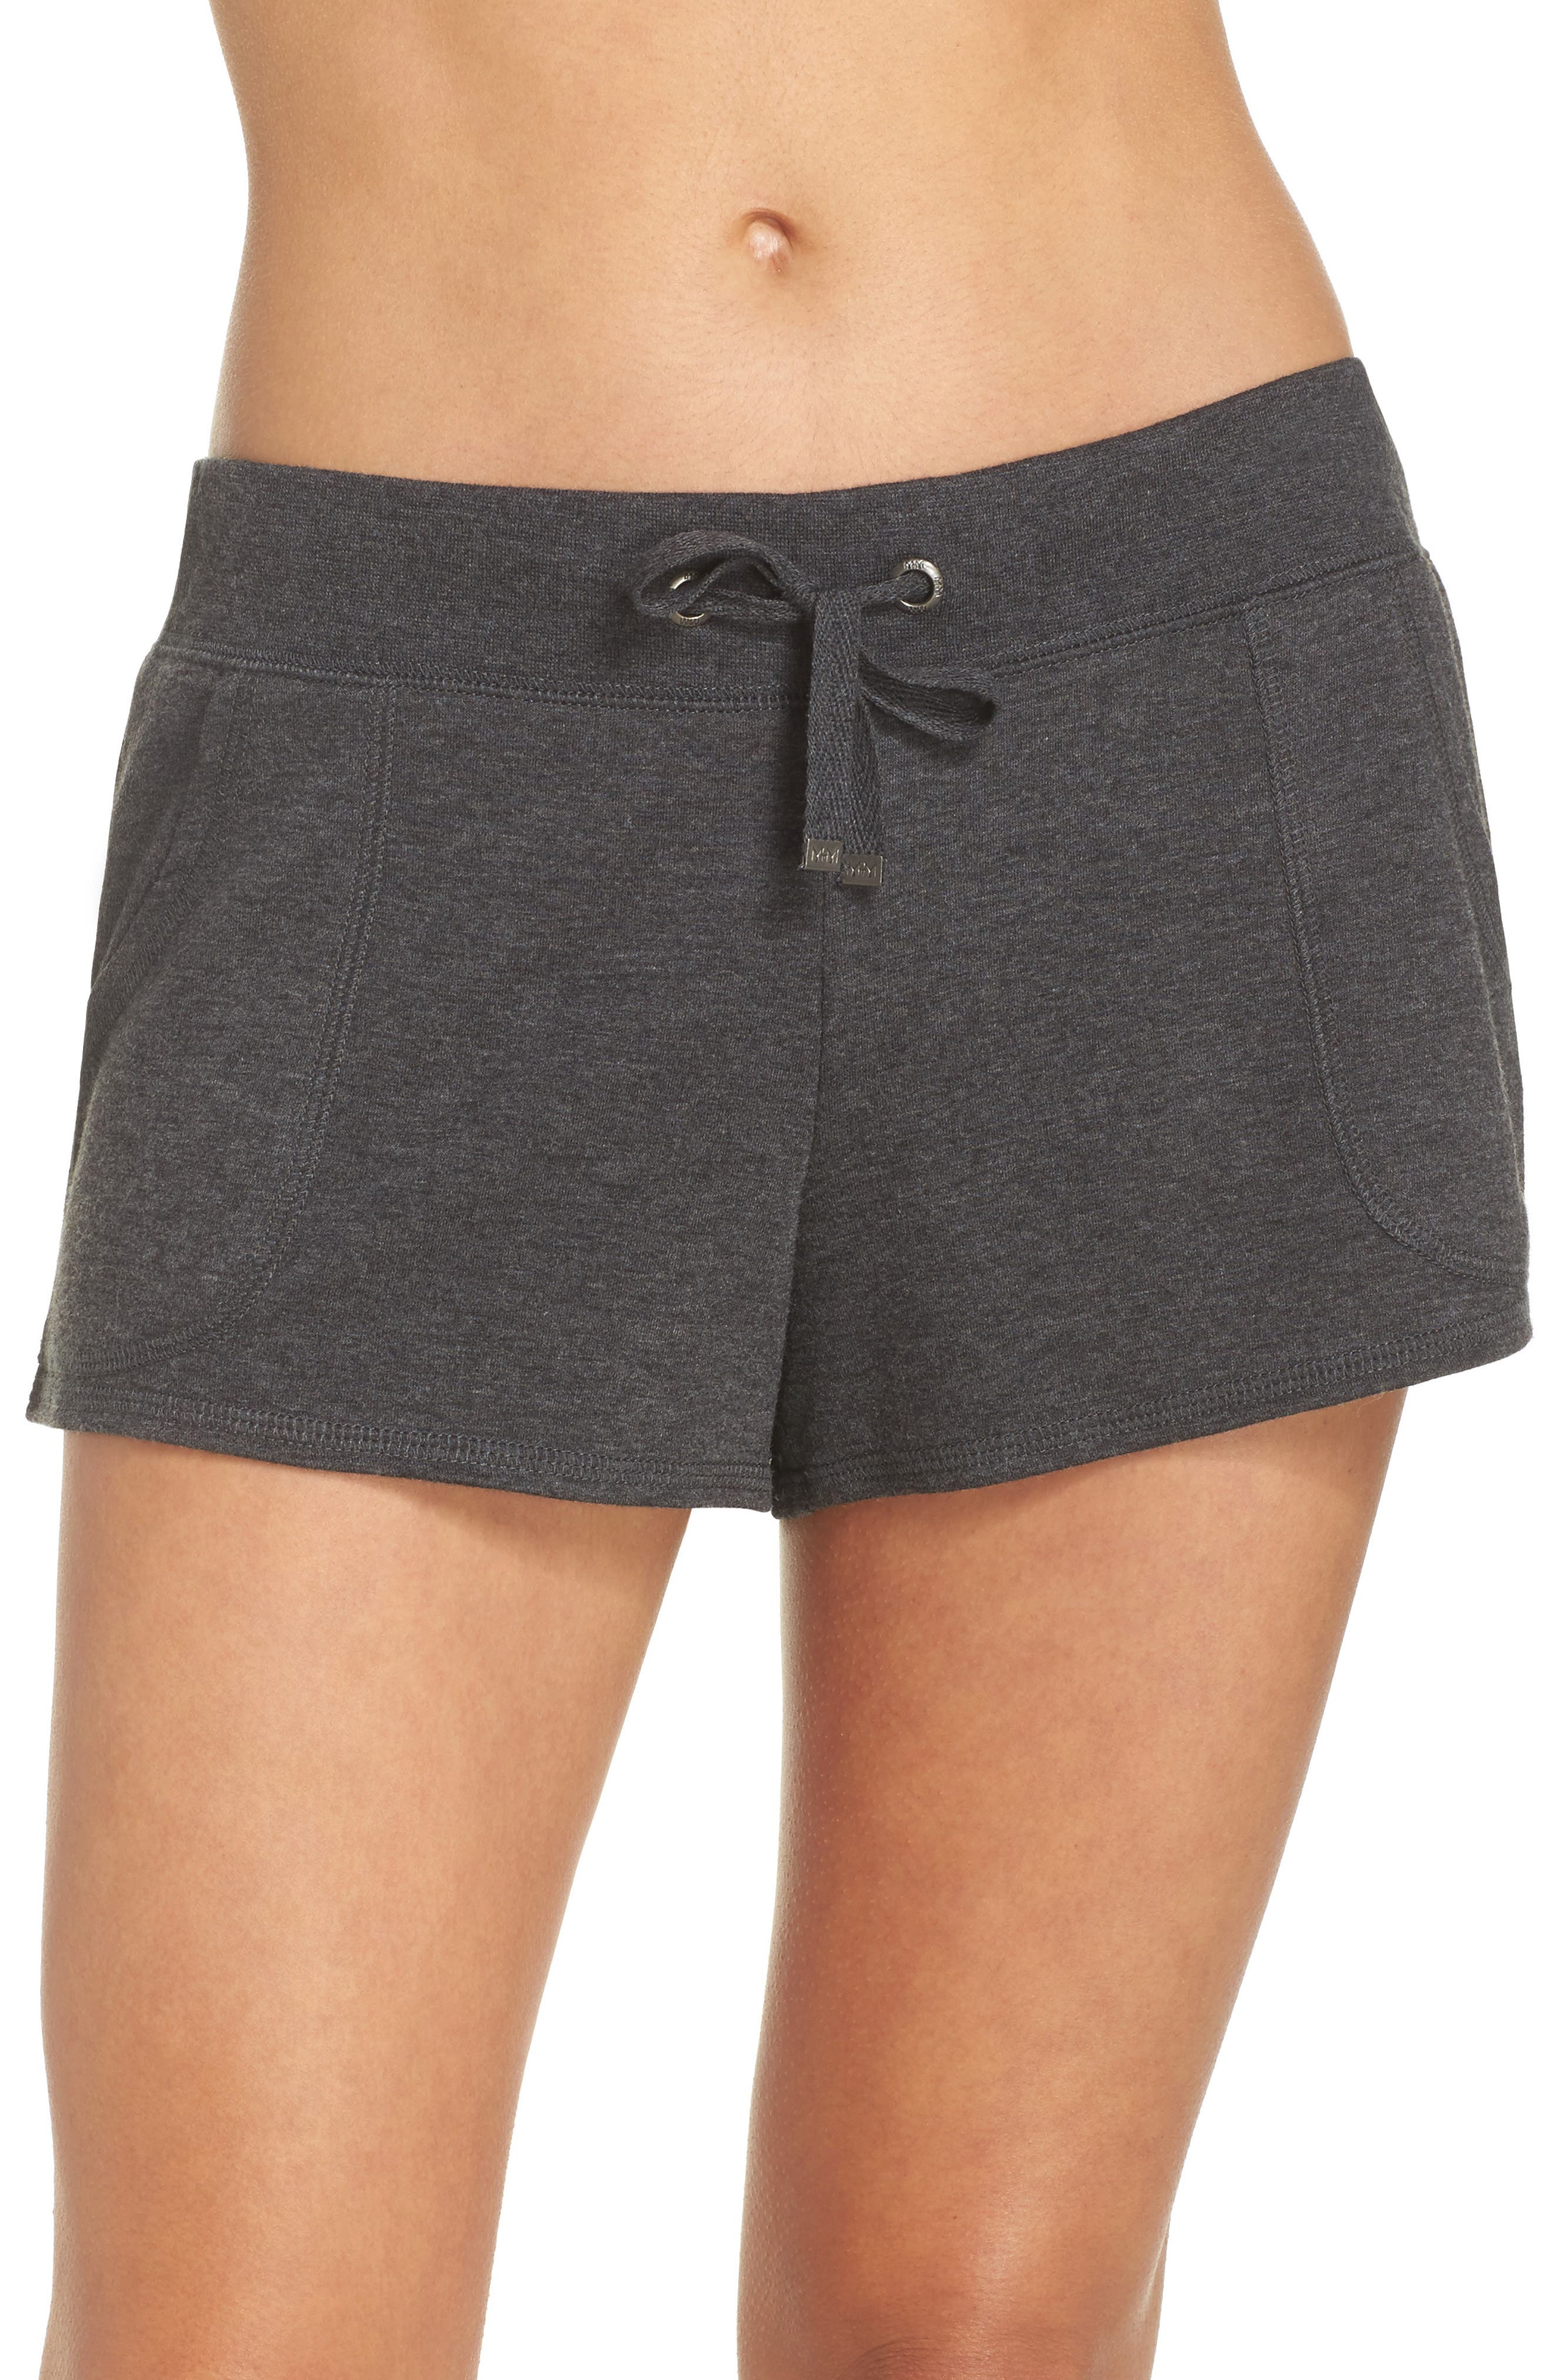 Down To The Details Lounge Shorts,                             Main thumbnail 1, color,                             030